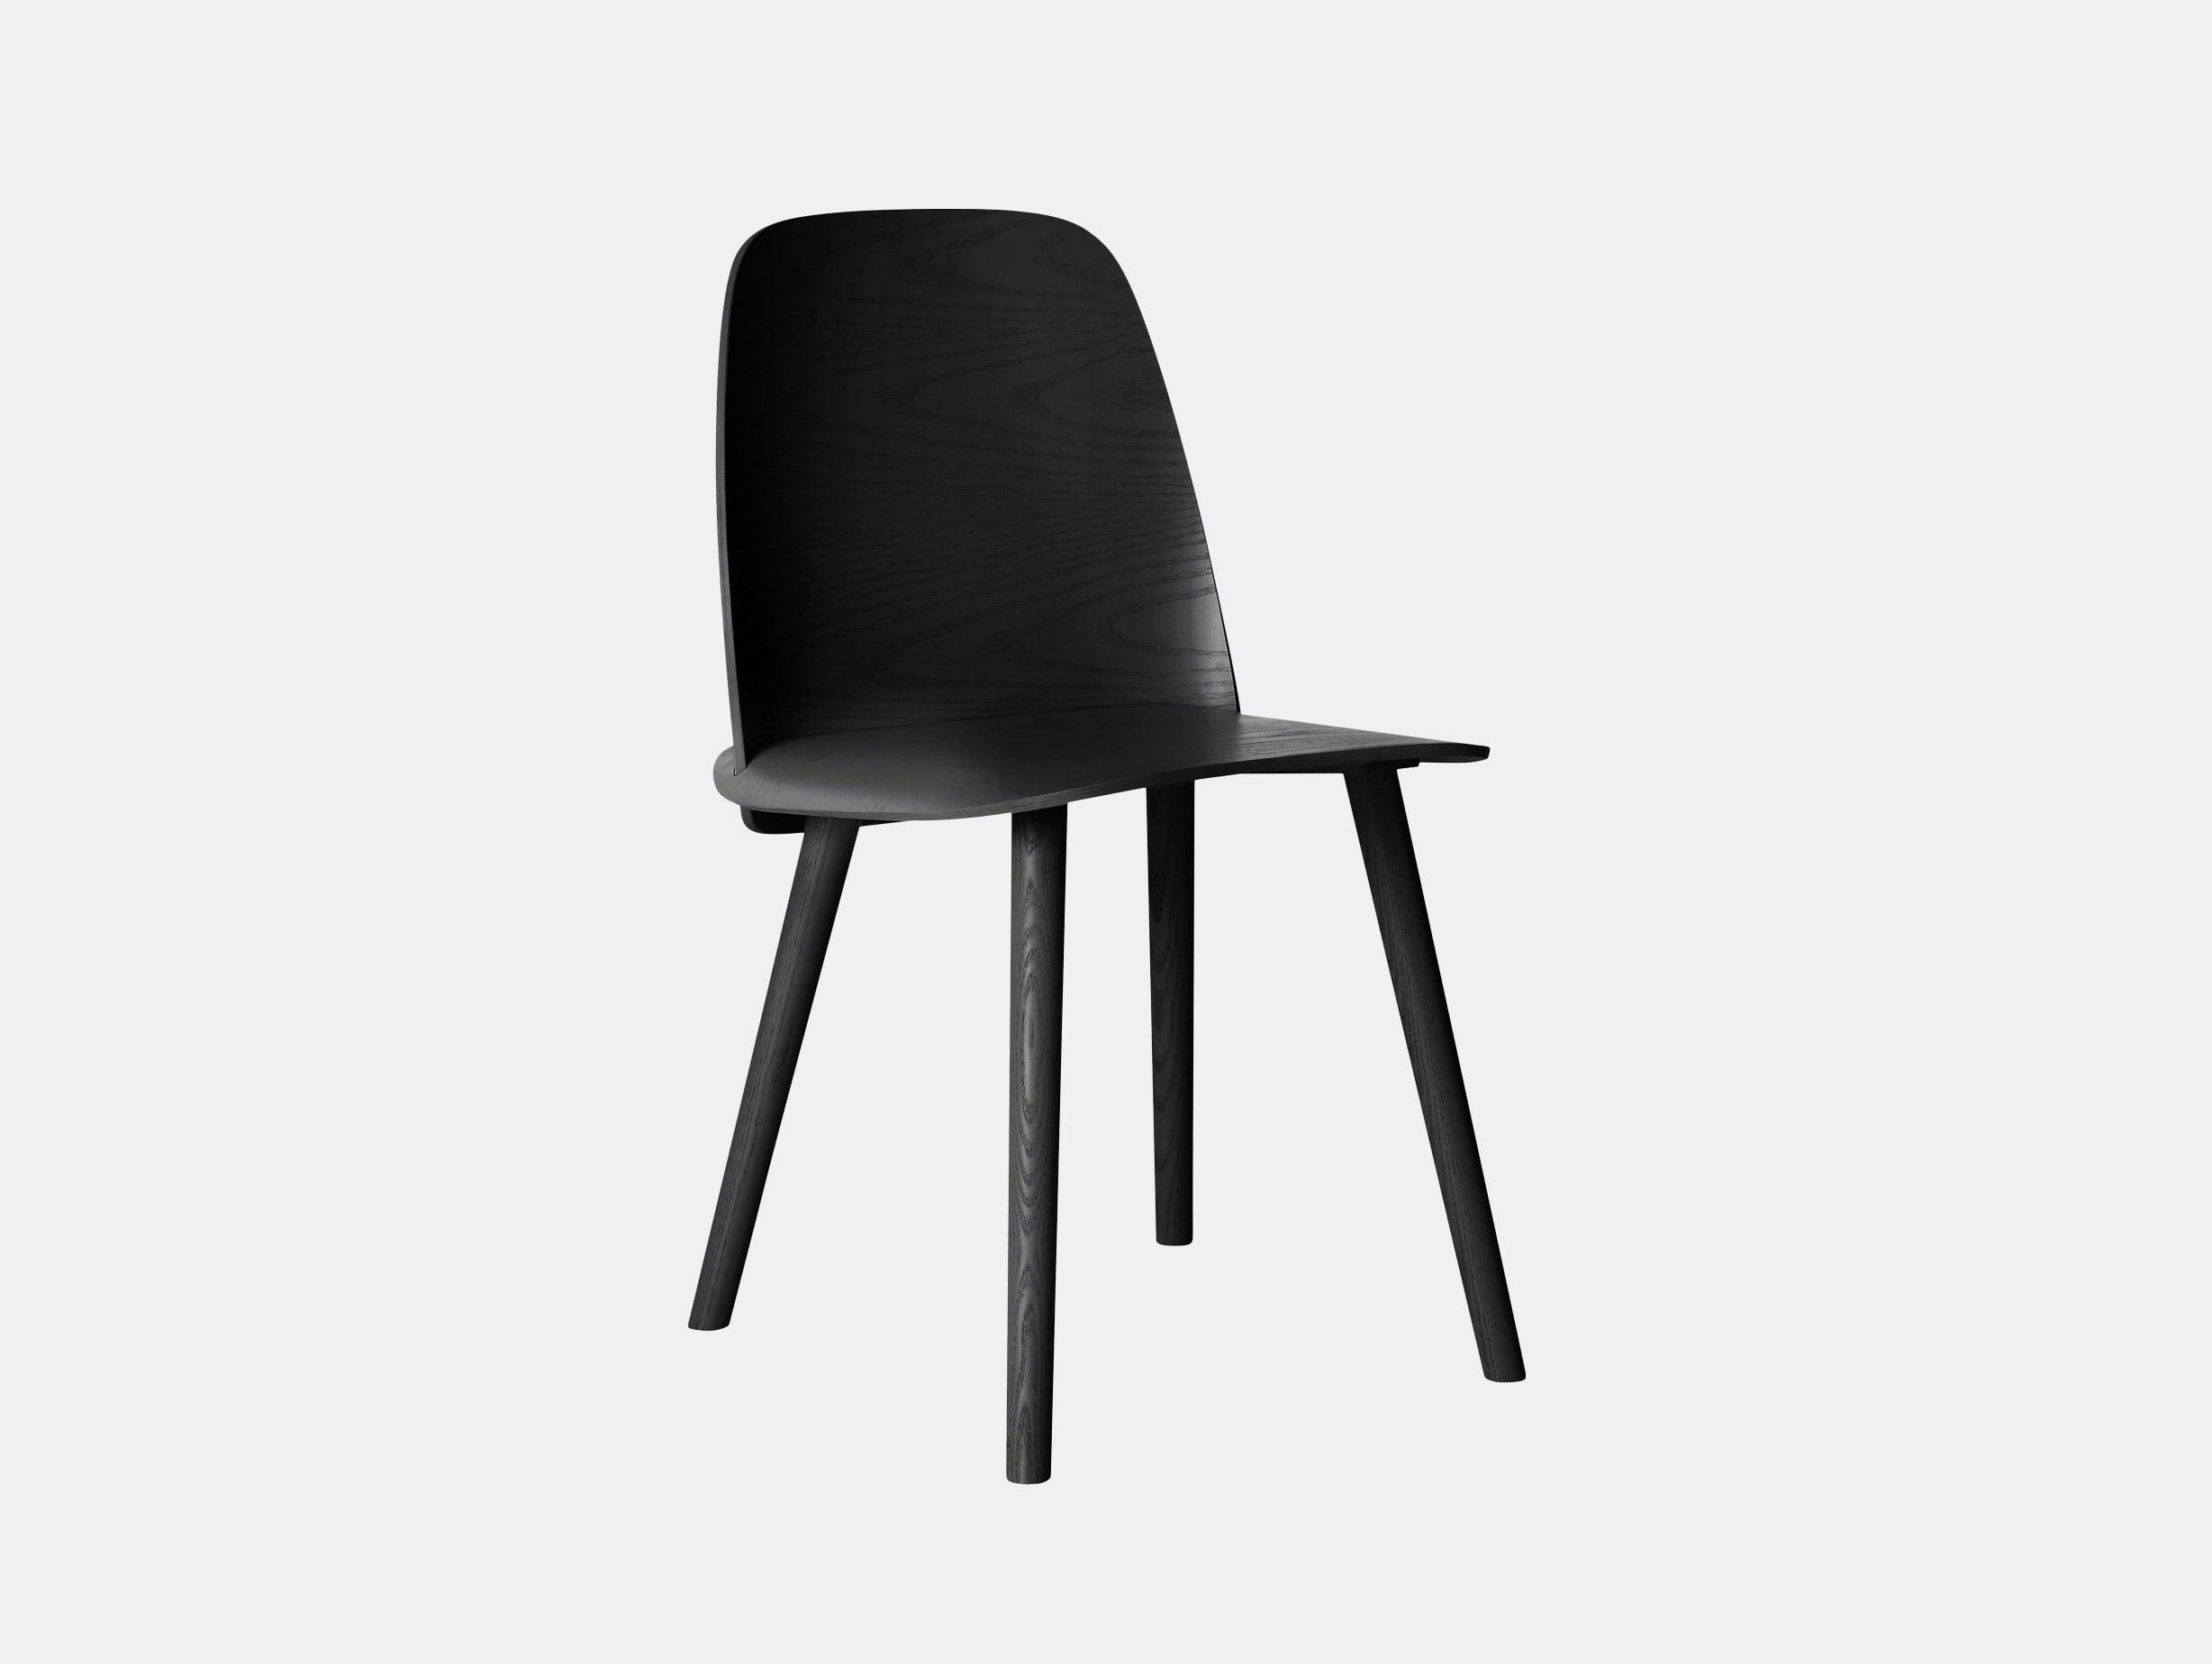 Muuto Nerd Chair Black David Geckeler